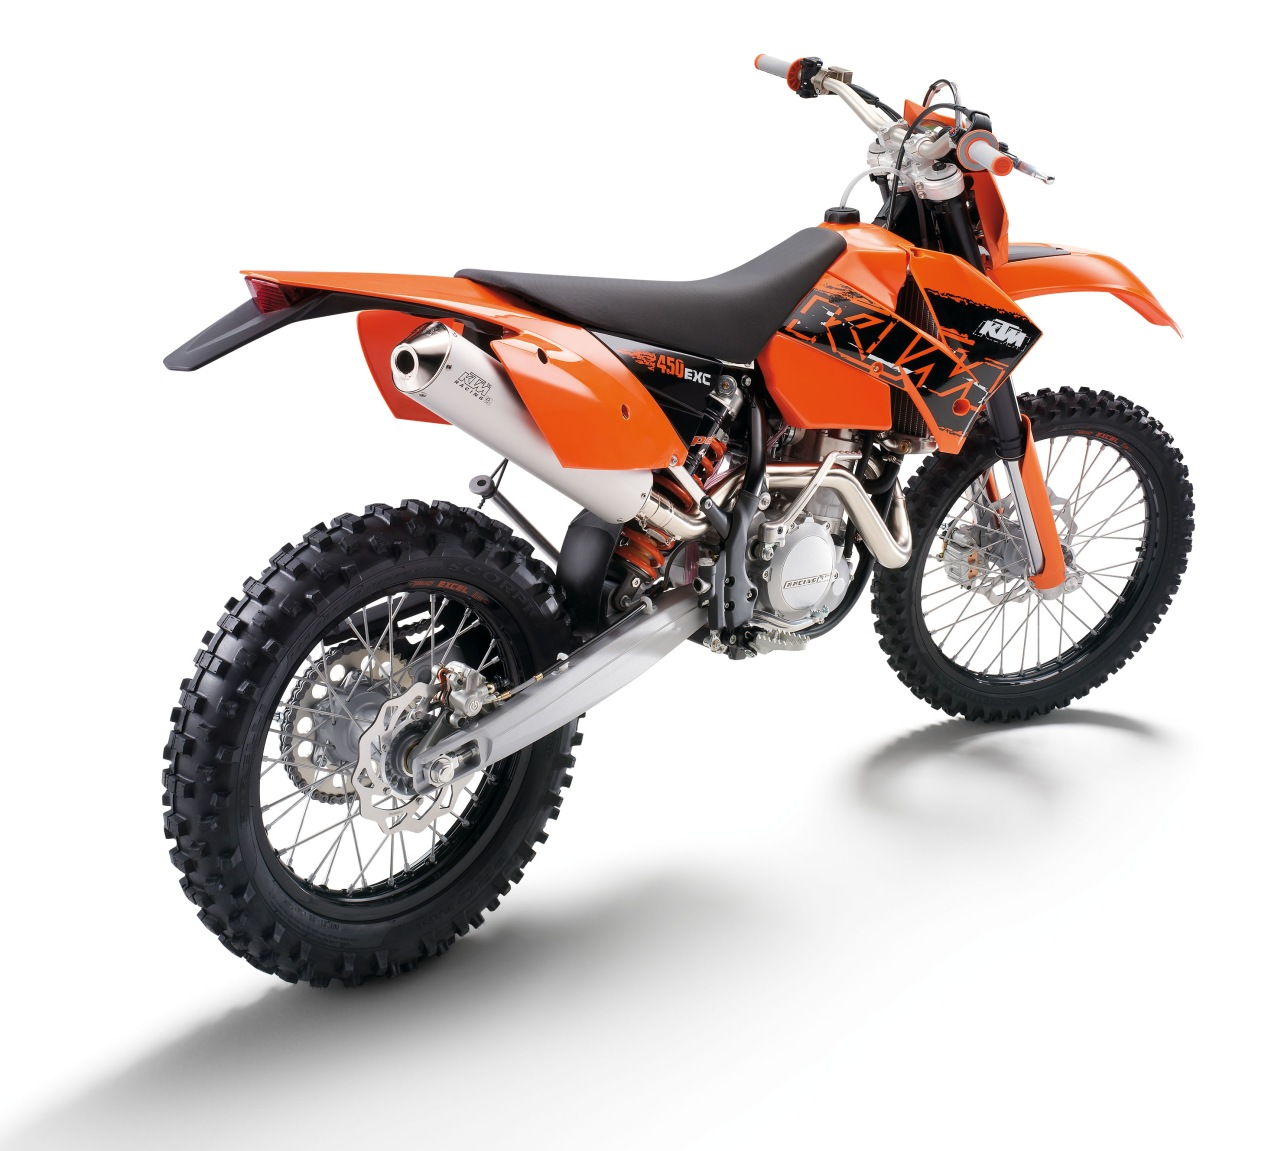 KTM 400 EXC Racing images #86400